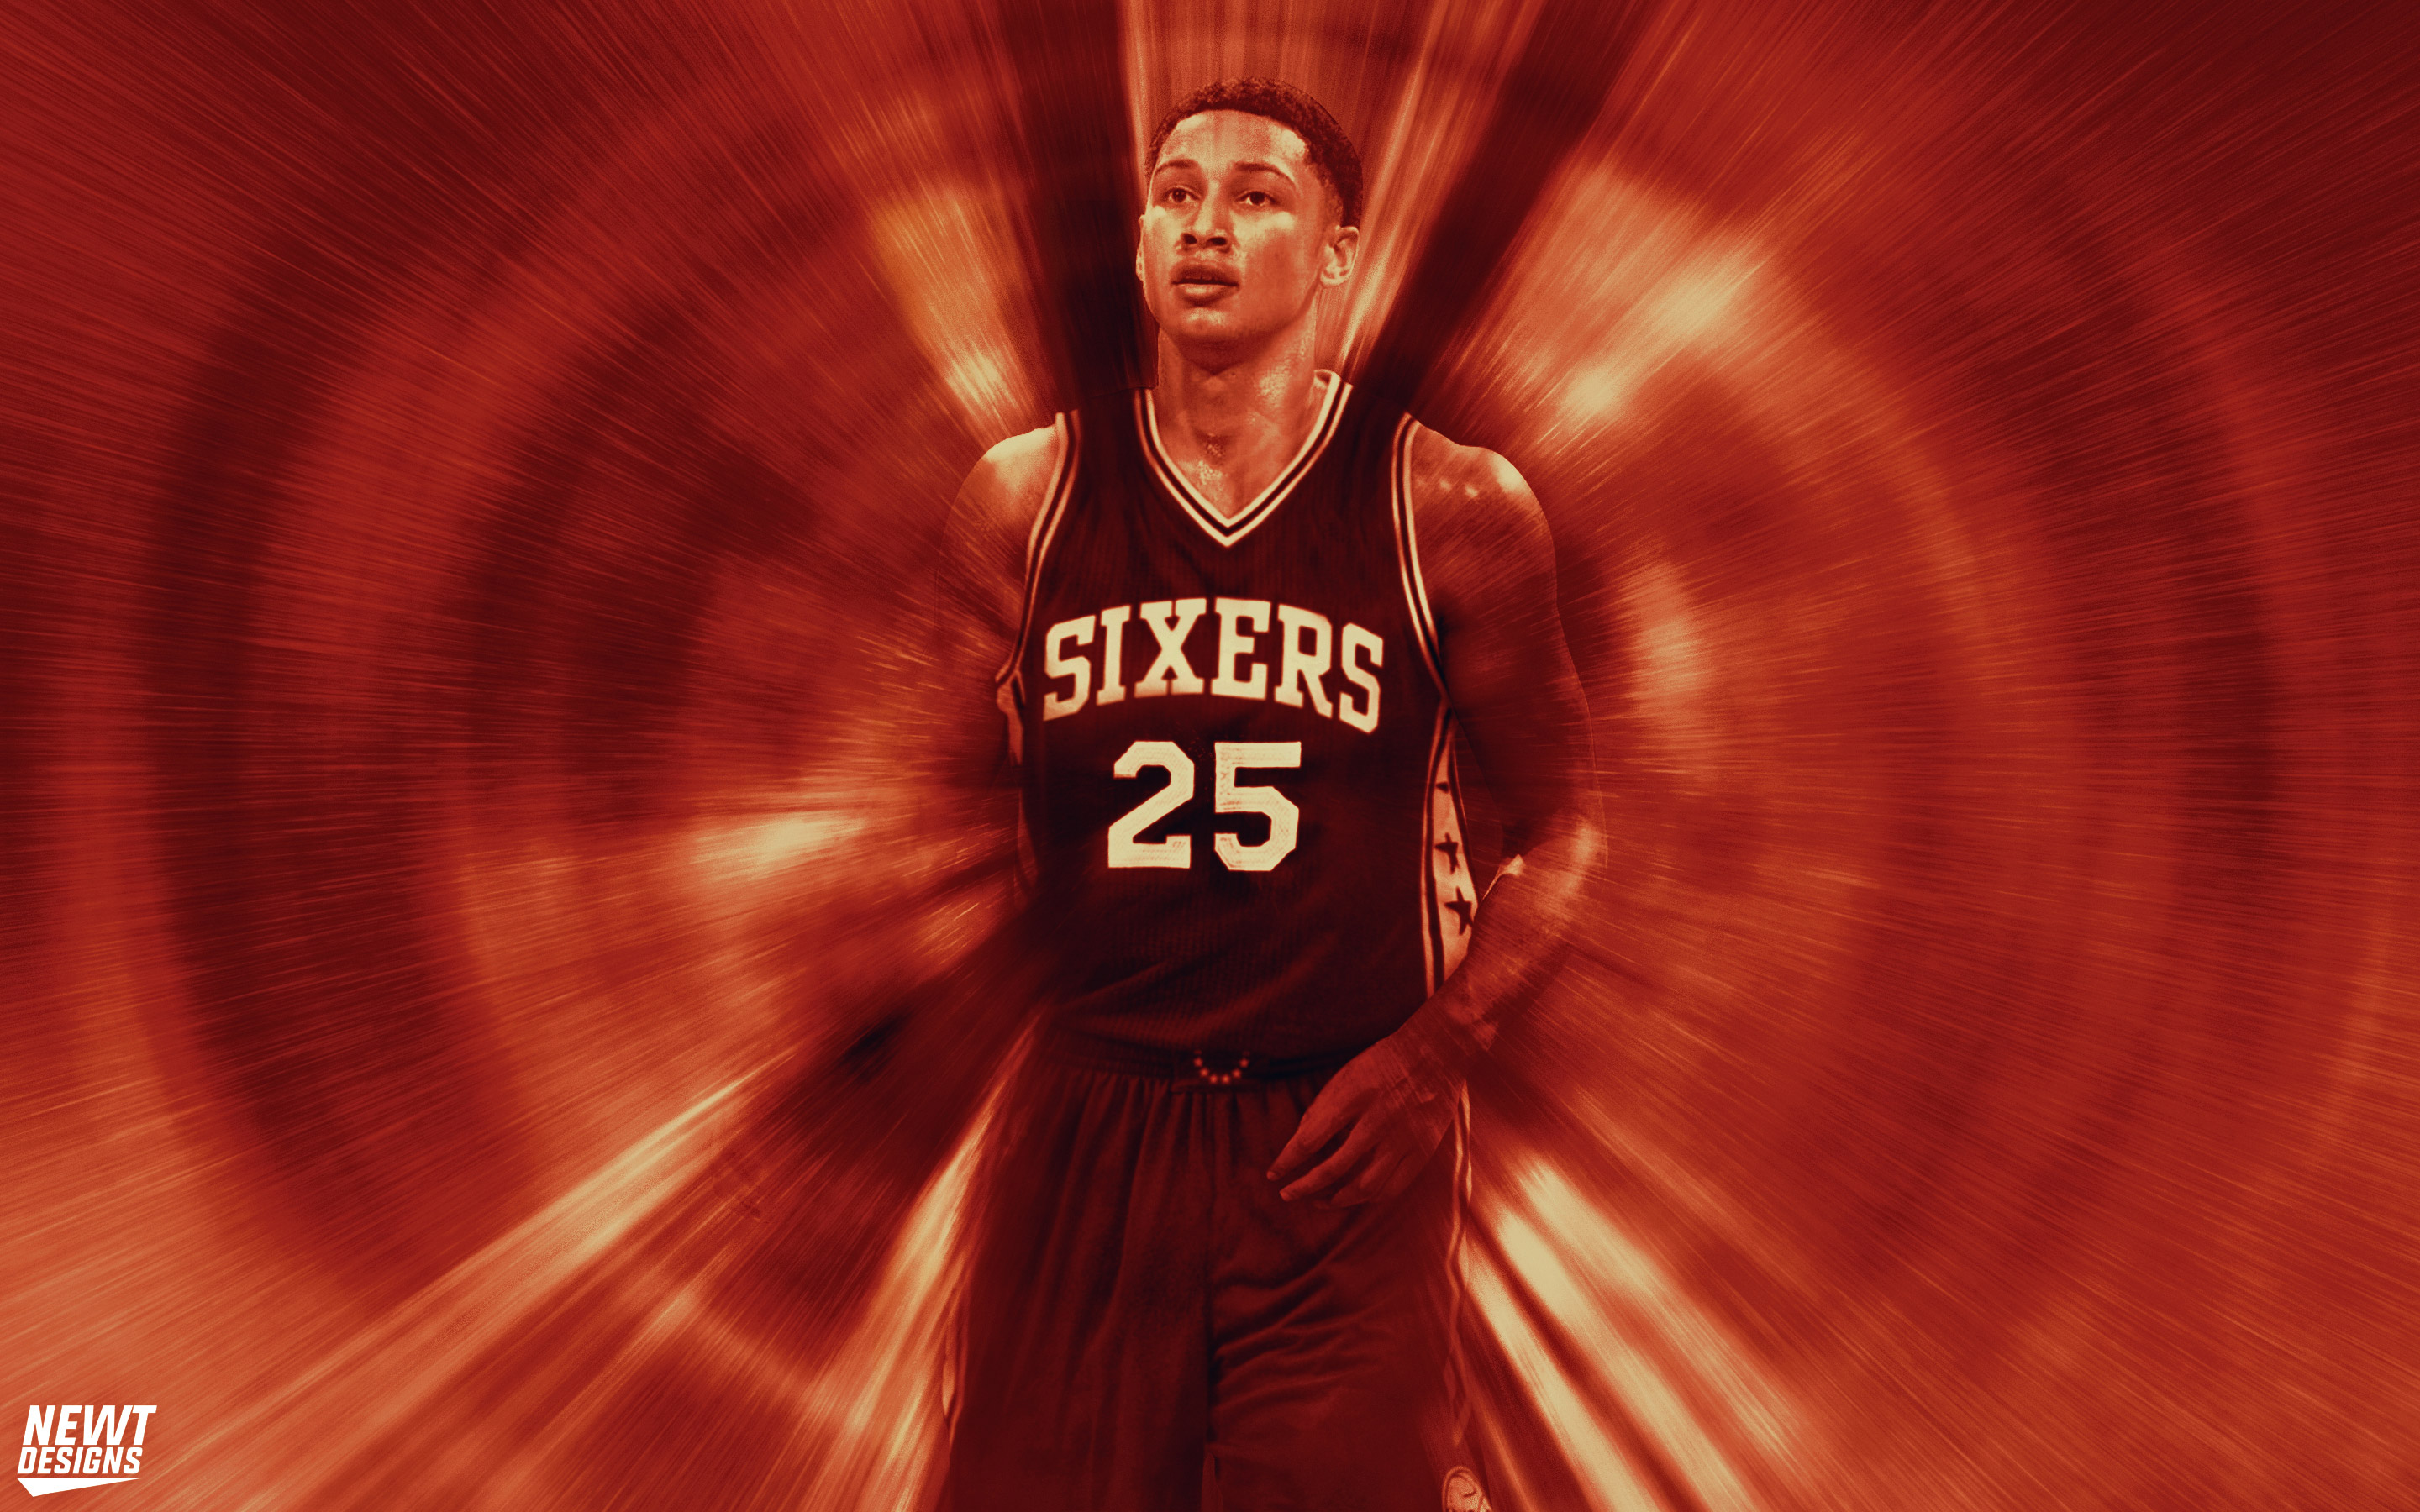 Australia Basketball Wallpapers   Basketball Wallpapers at     Ben Simmons 76ers Pick 1 Wallpaper